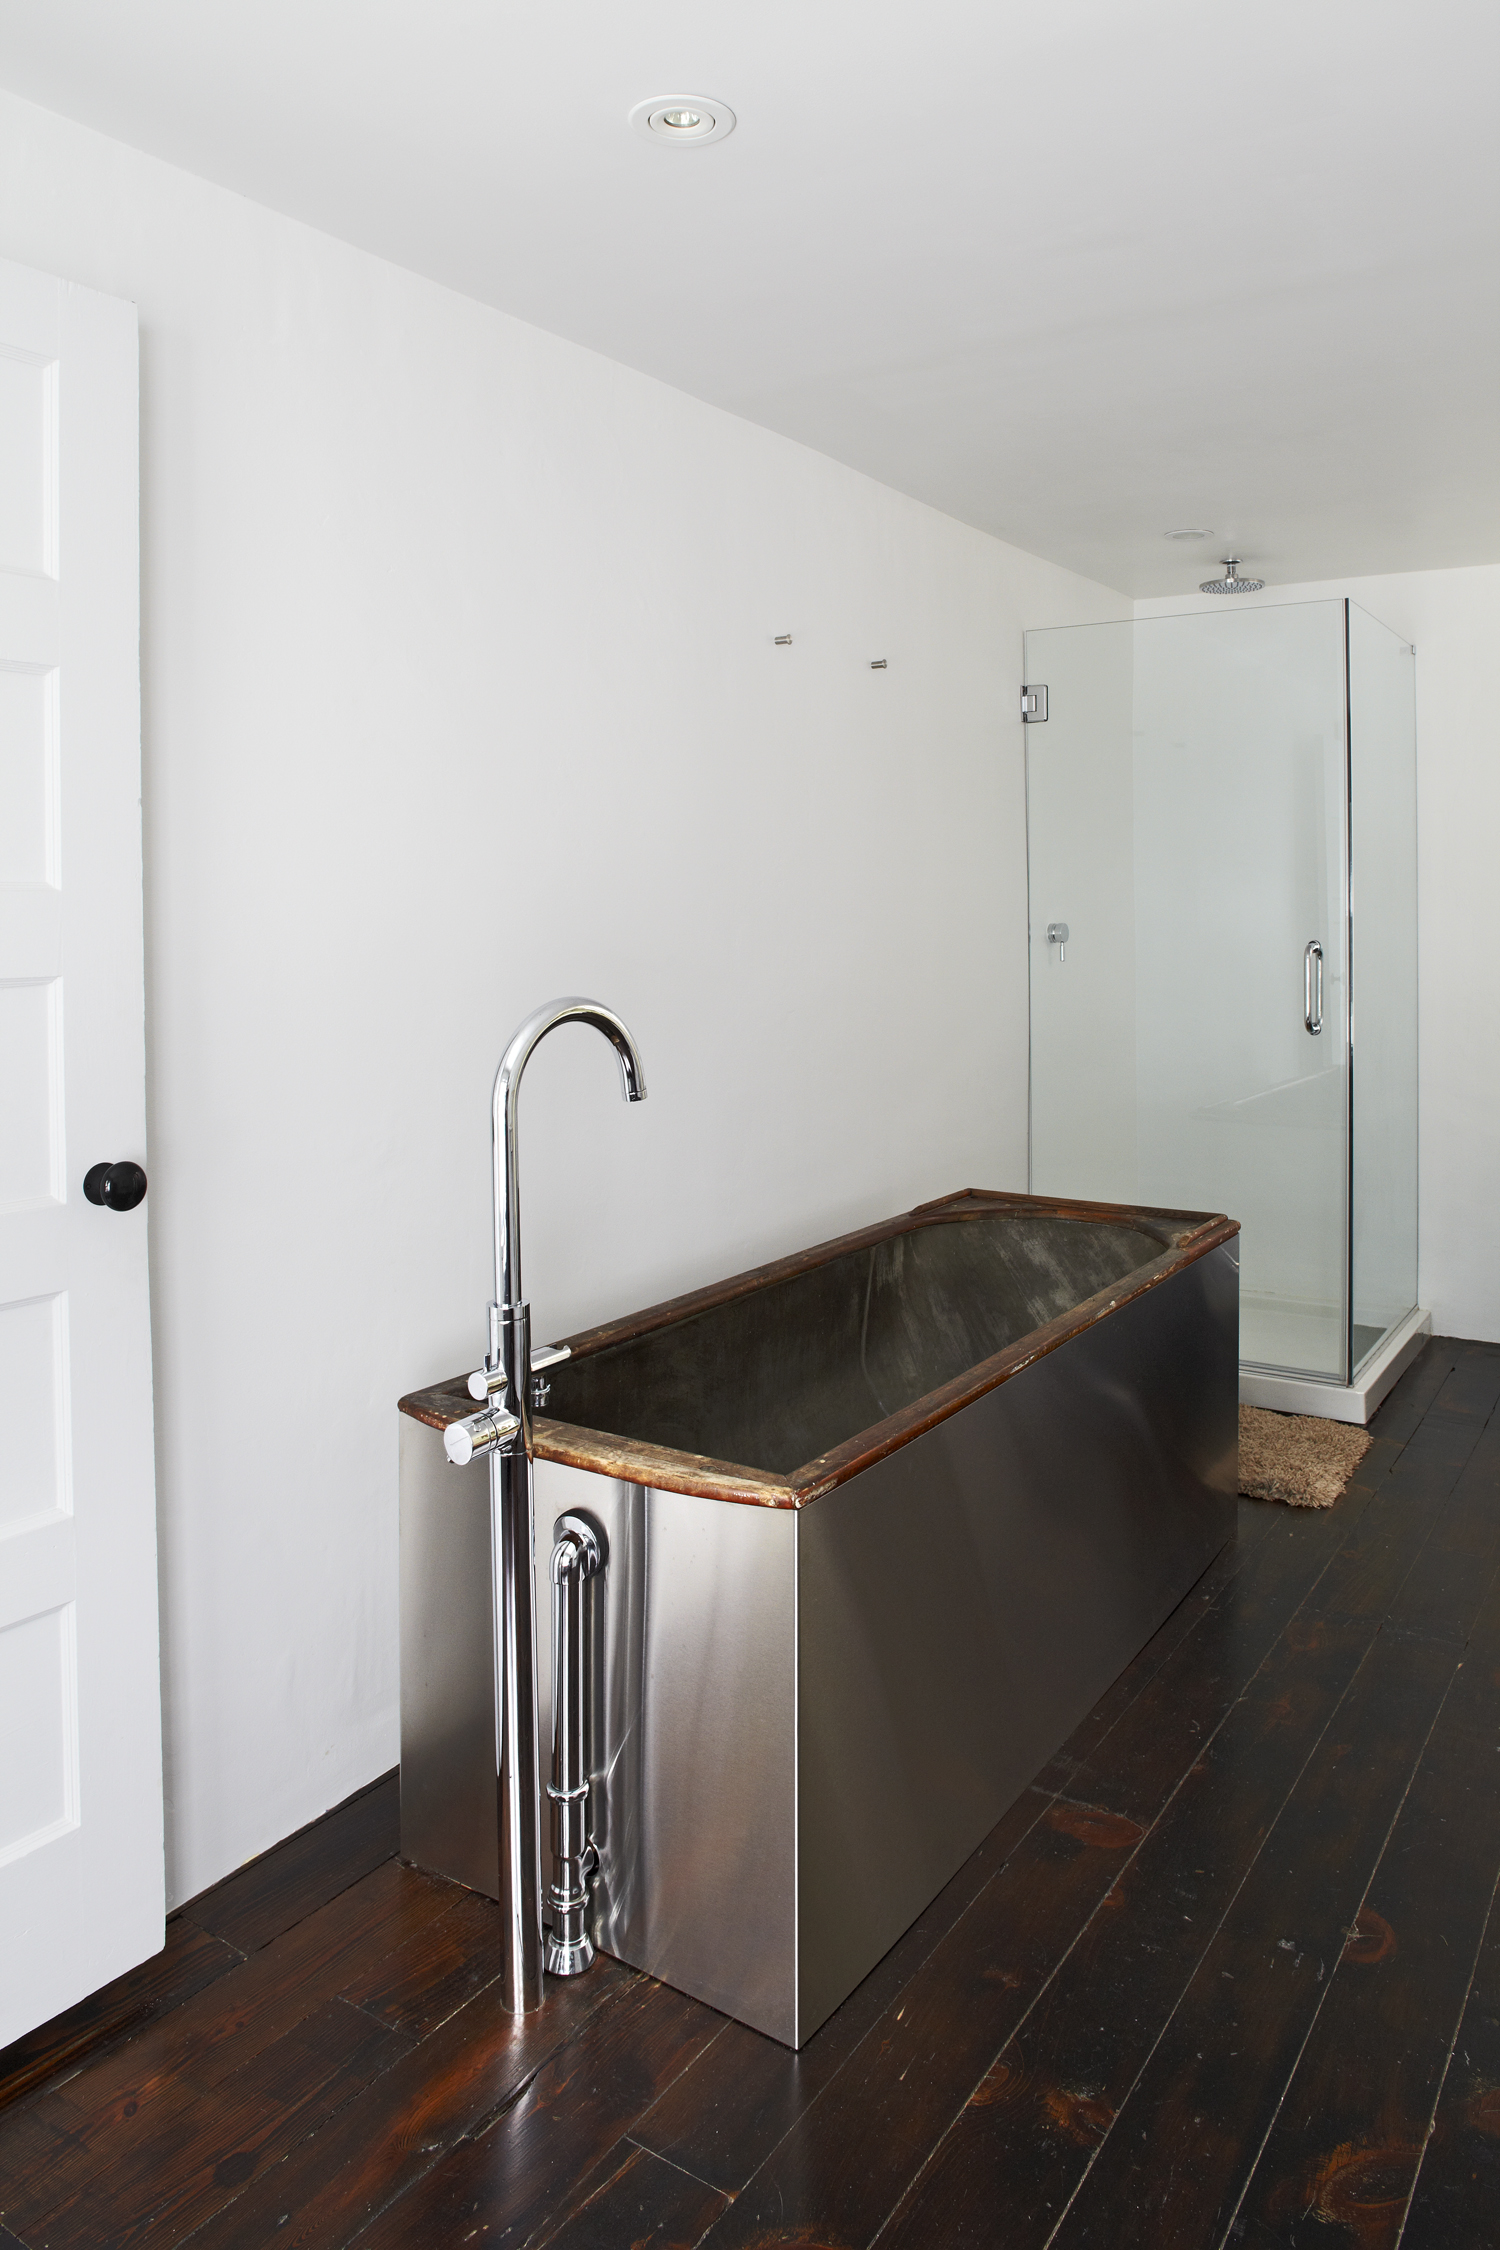 Antique wood and copper bathtub, wrapped in stainless steel,in the Floating Farmhouse Catskills vacation rental in upstate New York.